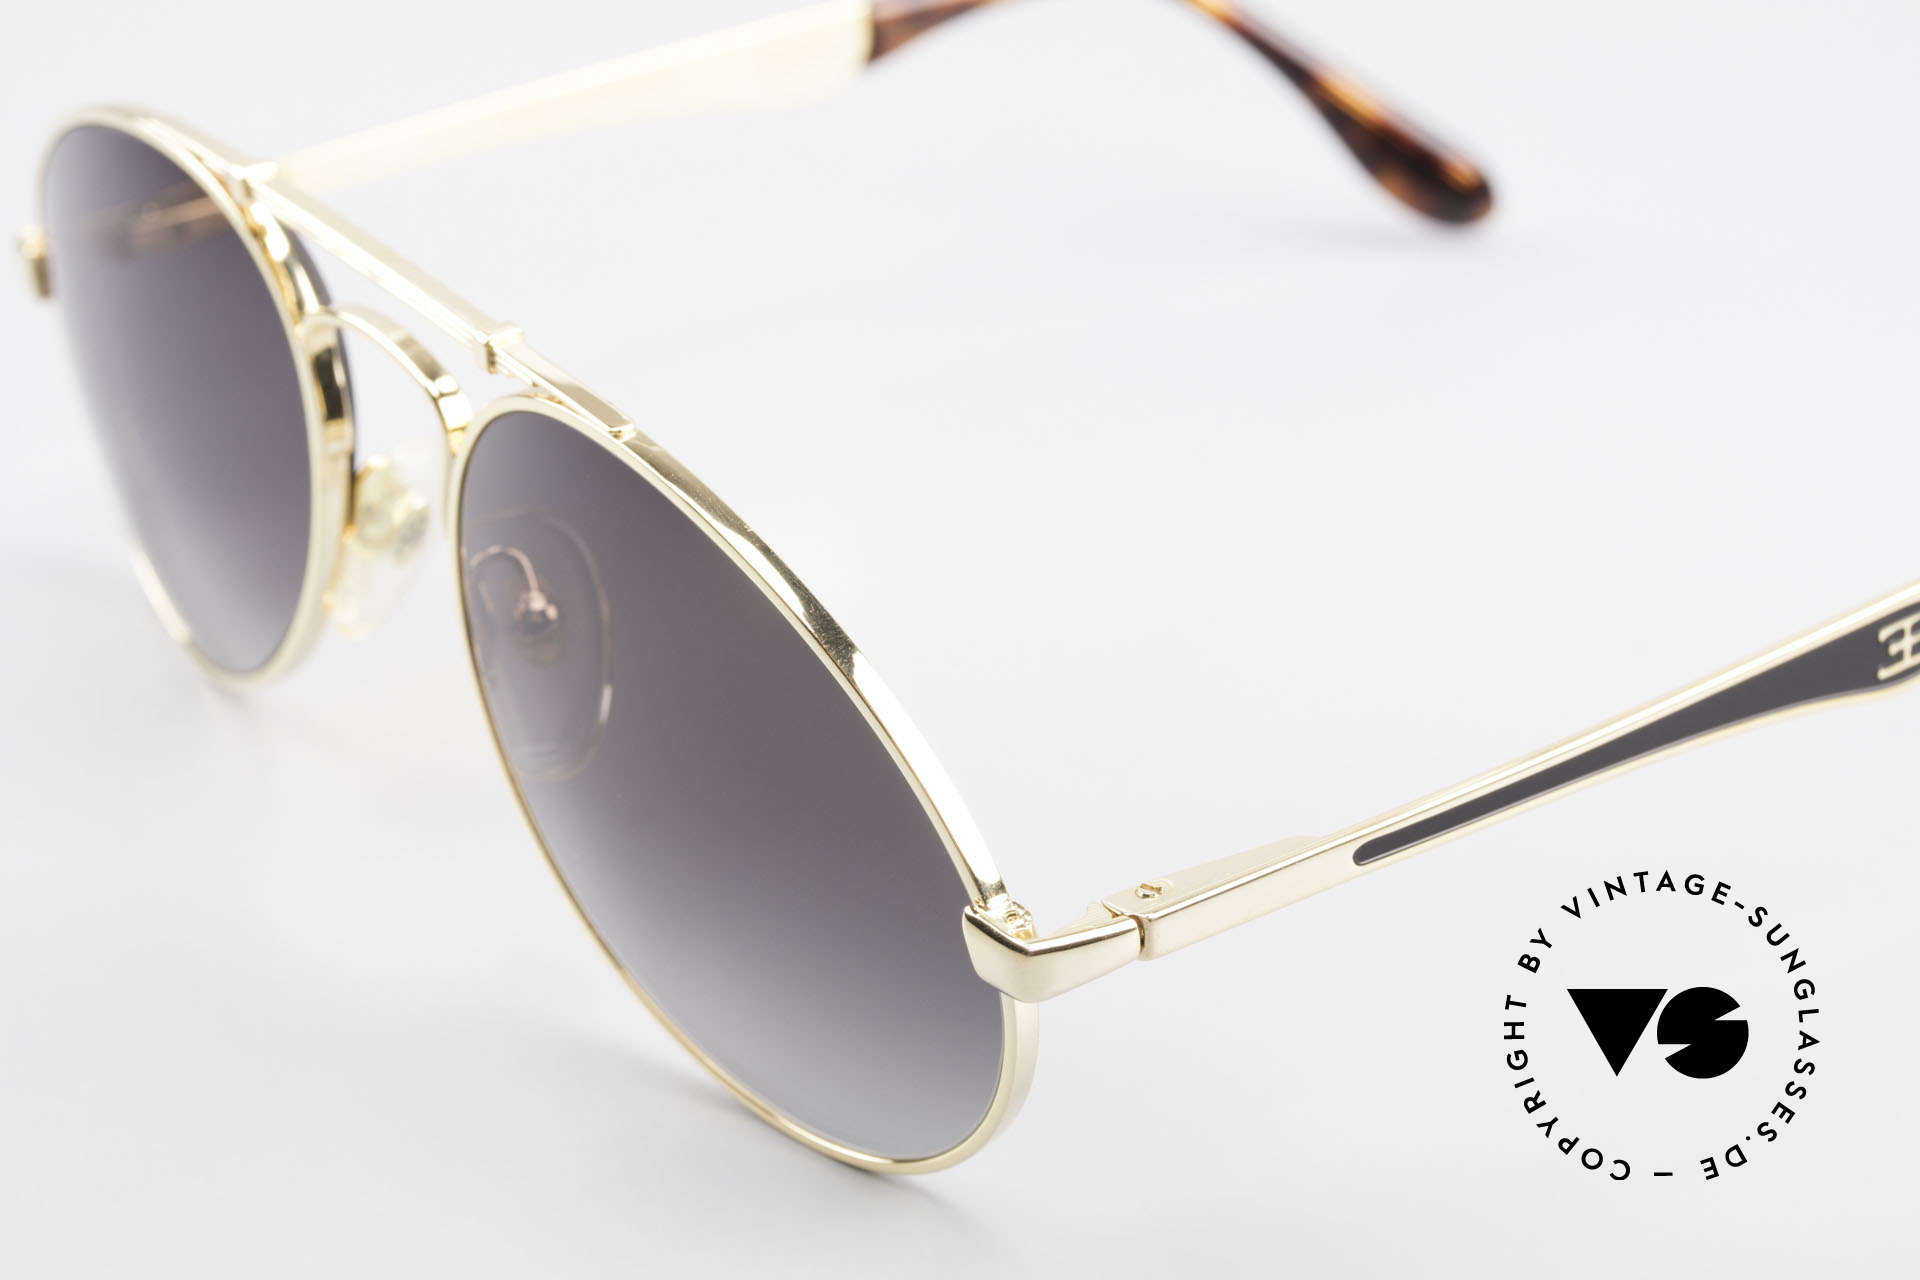 Bugatti 11911 80's Luxury Men's Sunglasses, a very noble unworn model (with orig. packing), Made for Men